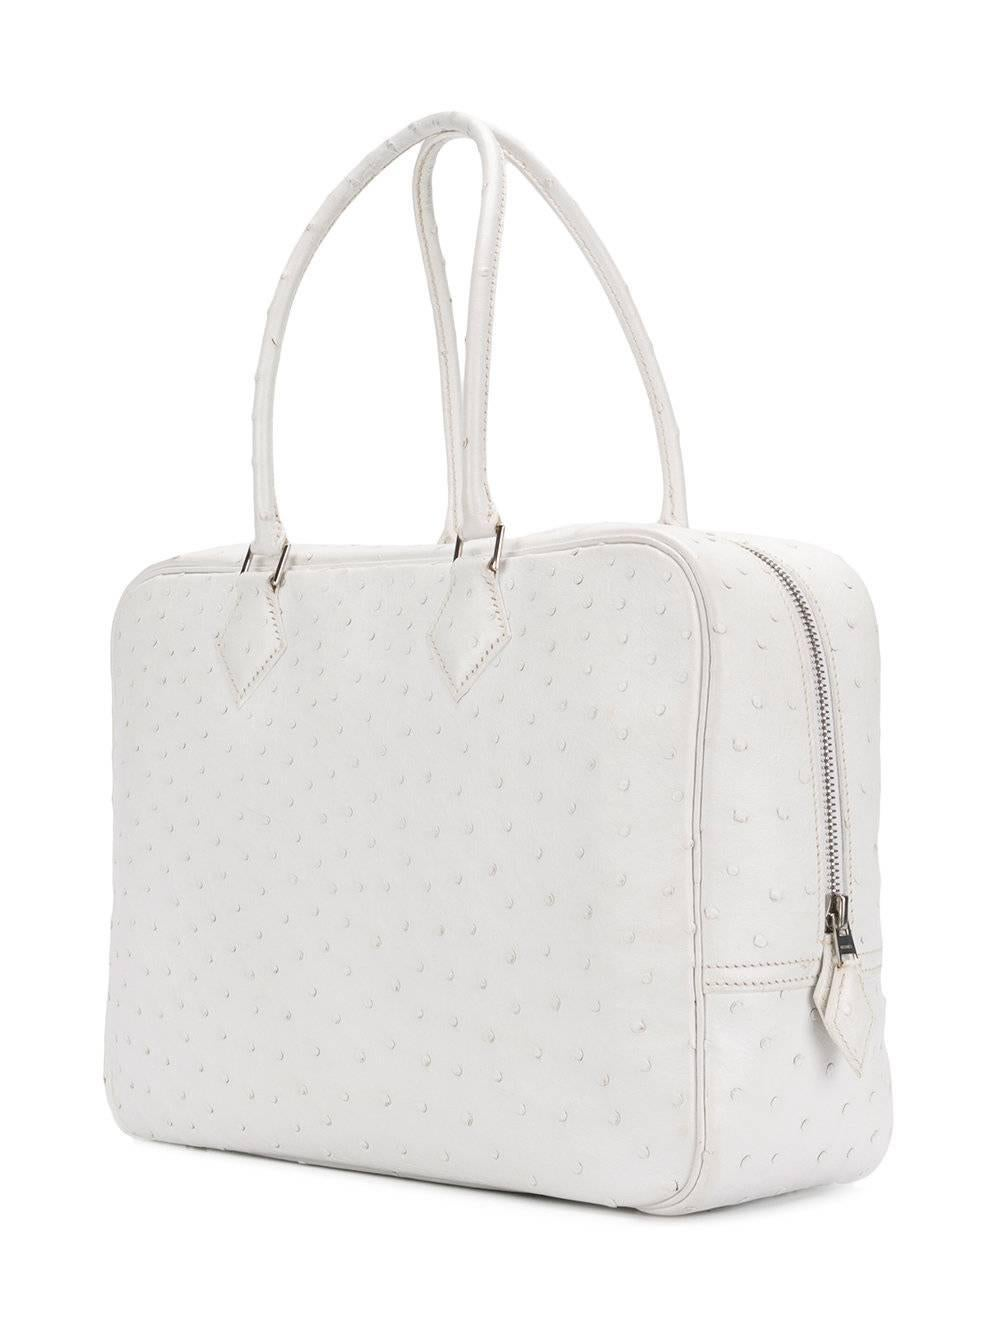 7571ceadcfa3 ... buy hermes plume white ostrich large bag 2001 at 1stdibs 05e27 eccb7 ...